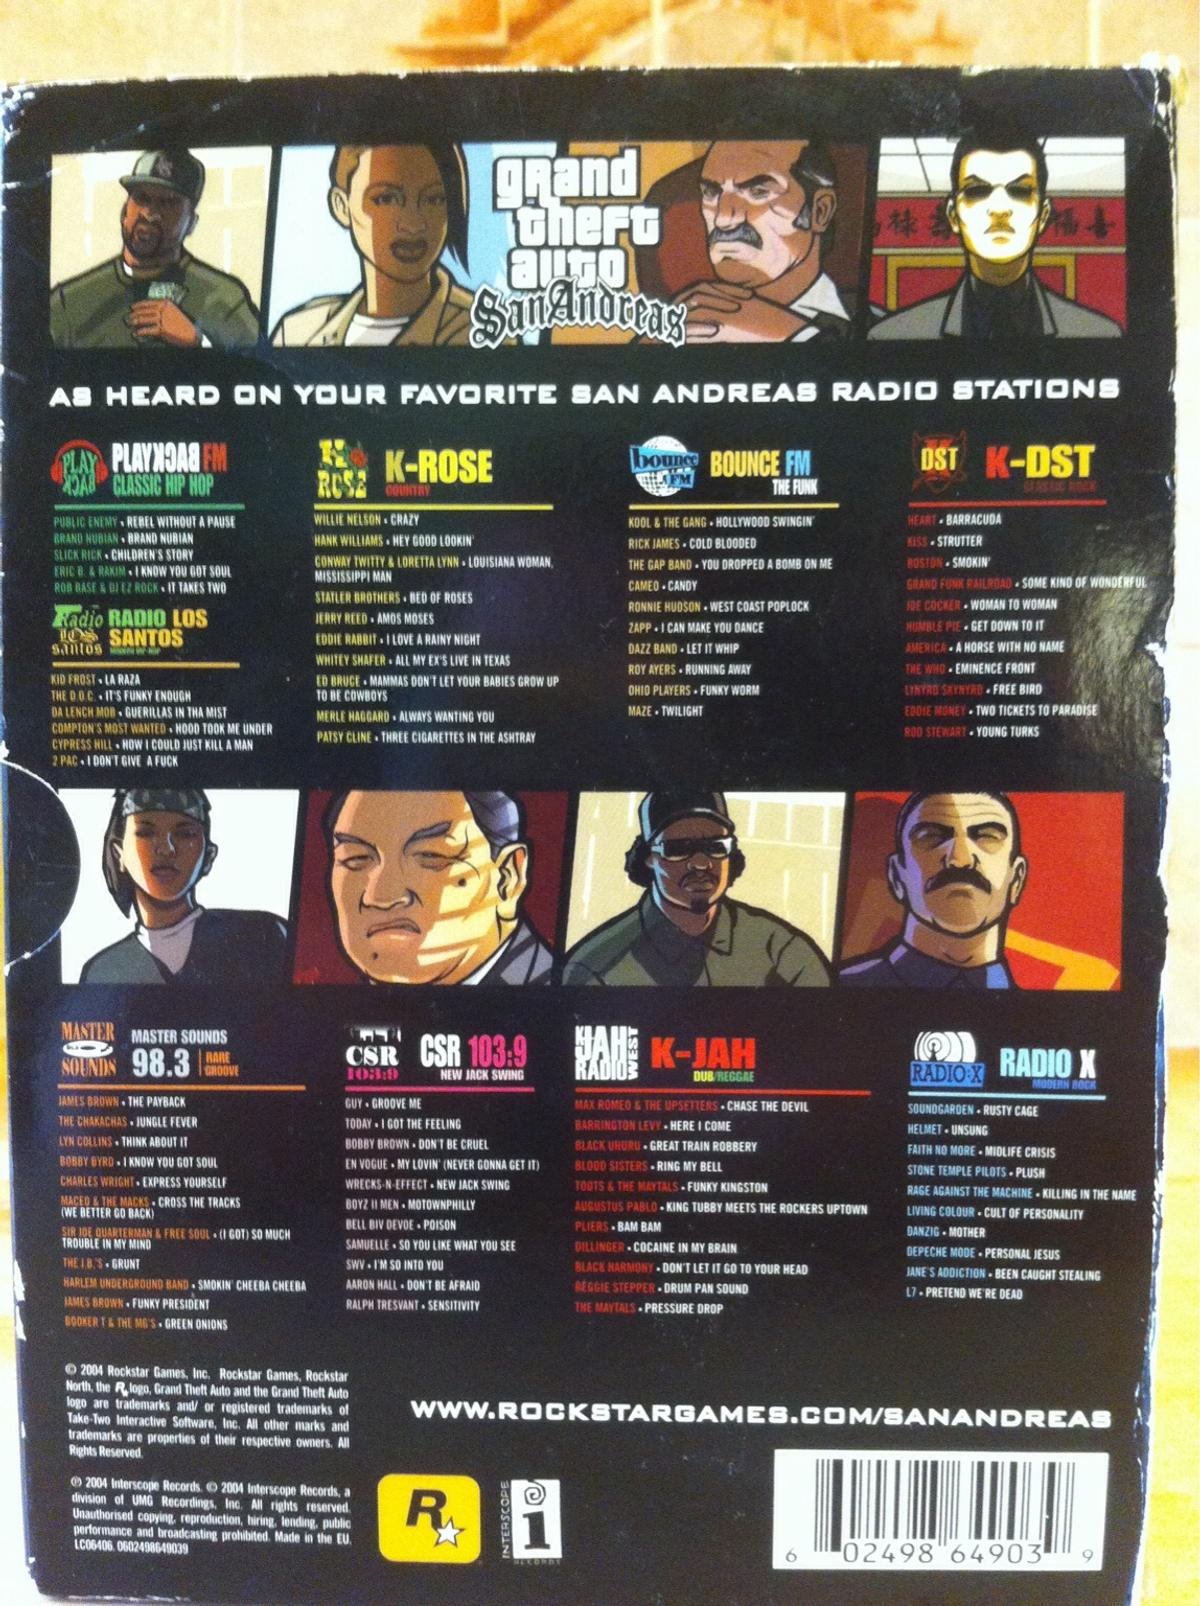 Grand theft auto cd box set  in PO10 Emsworth for £88 00 for